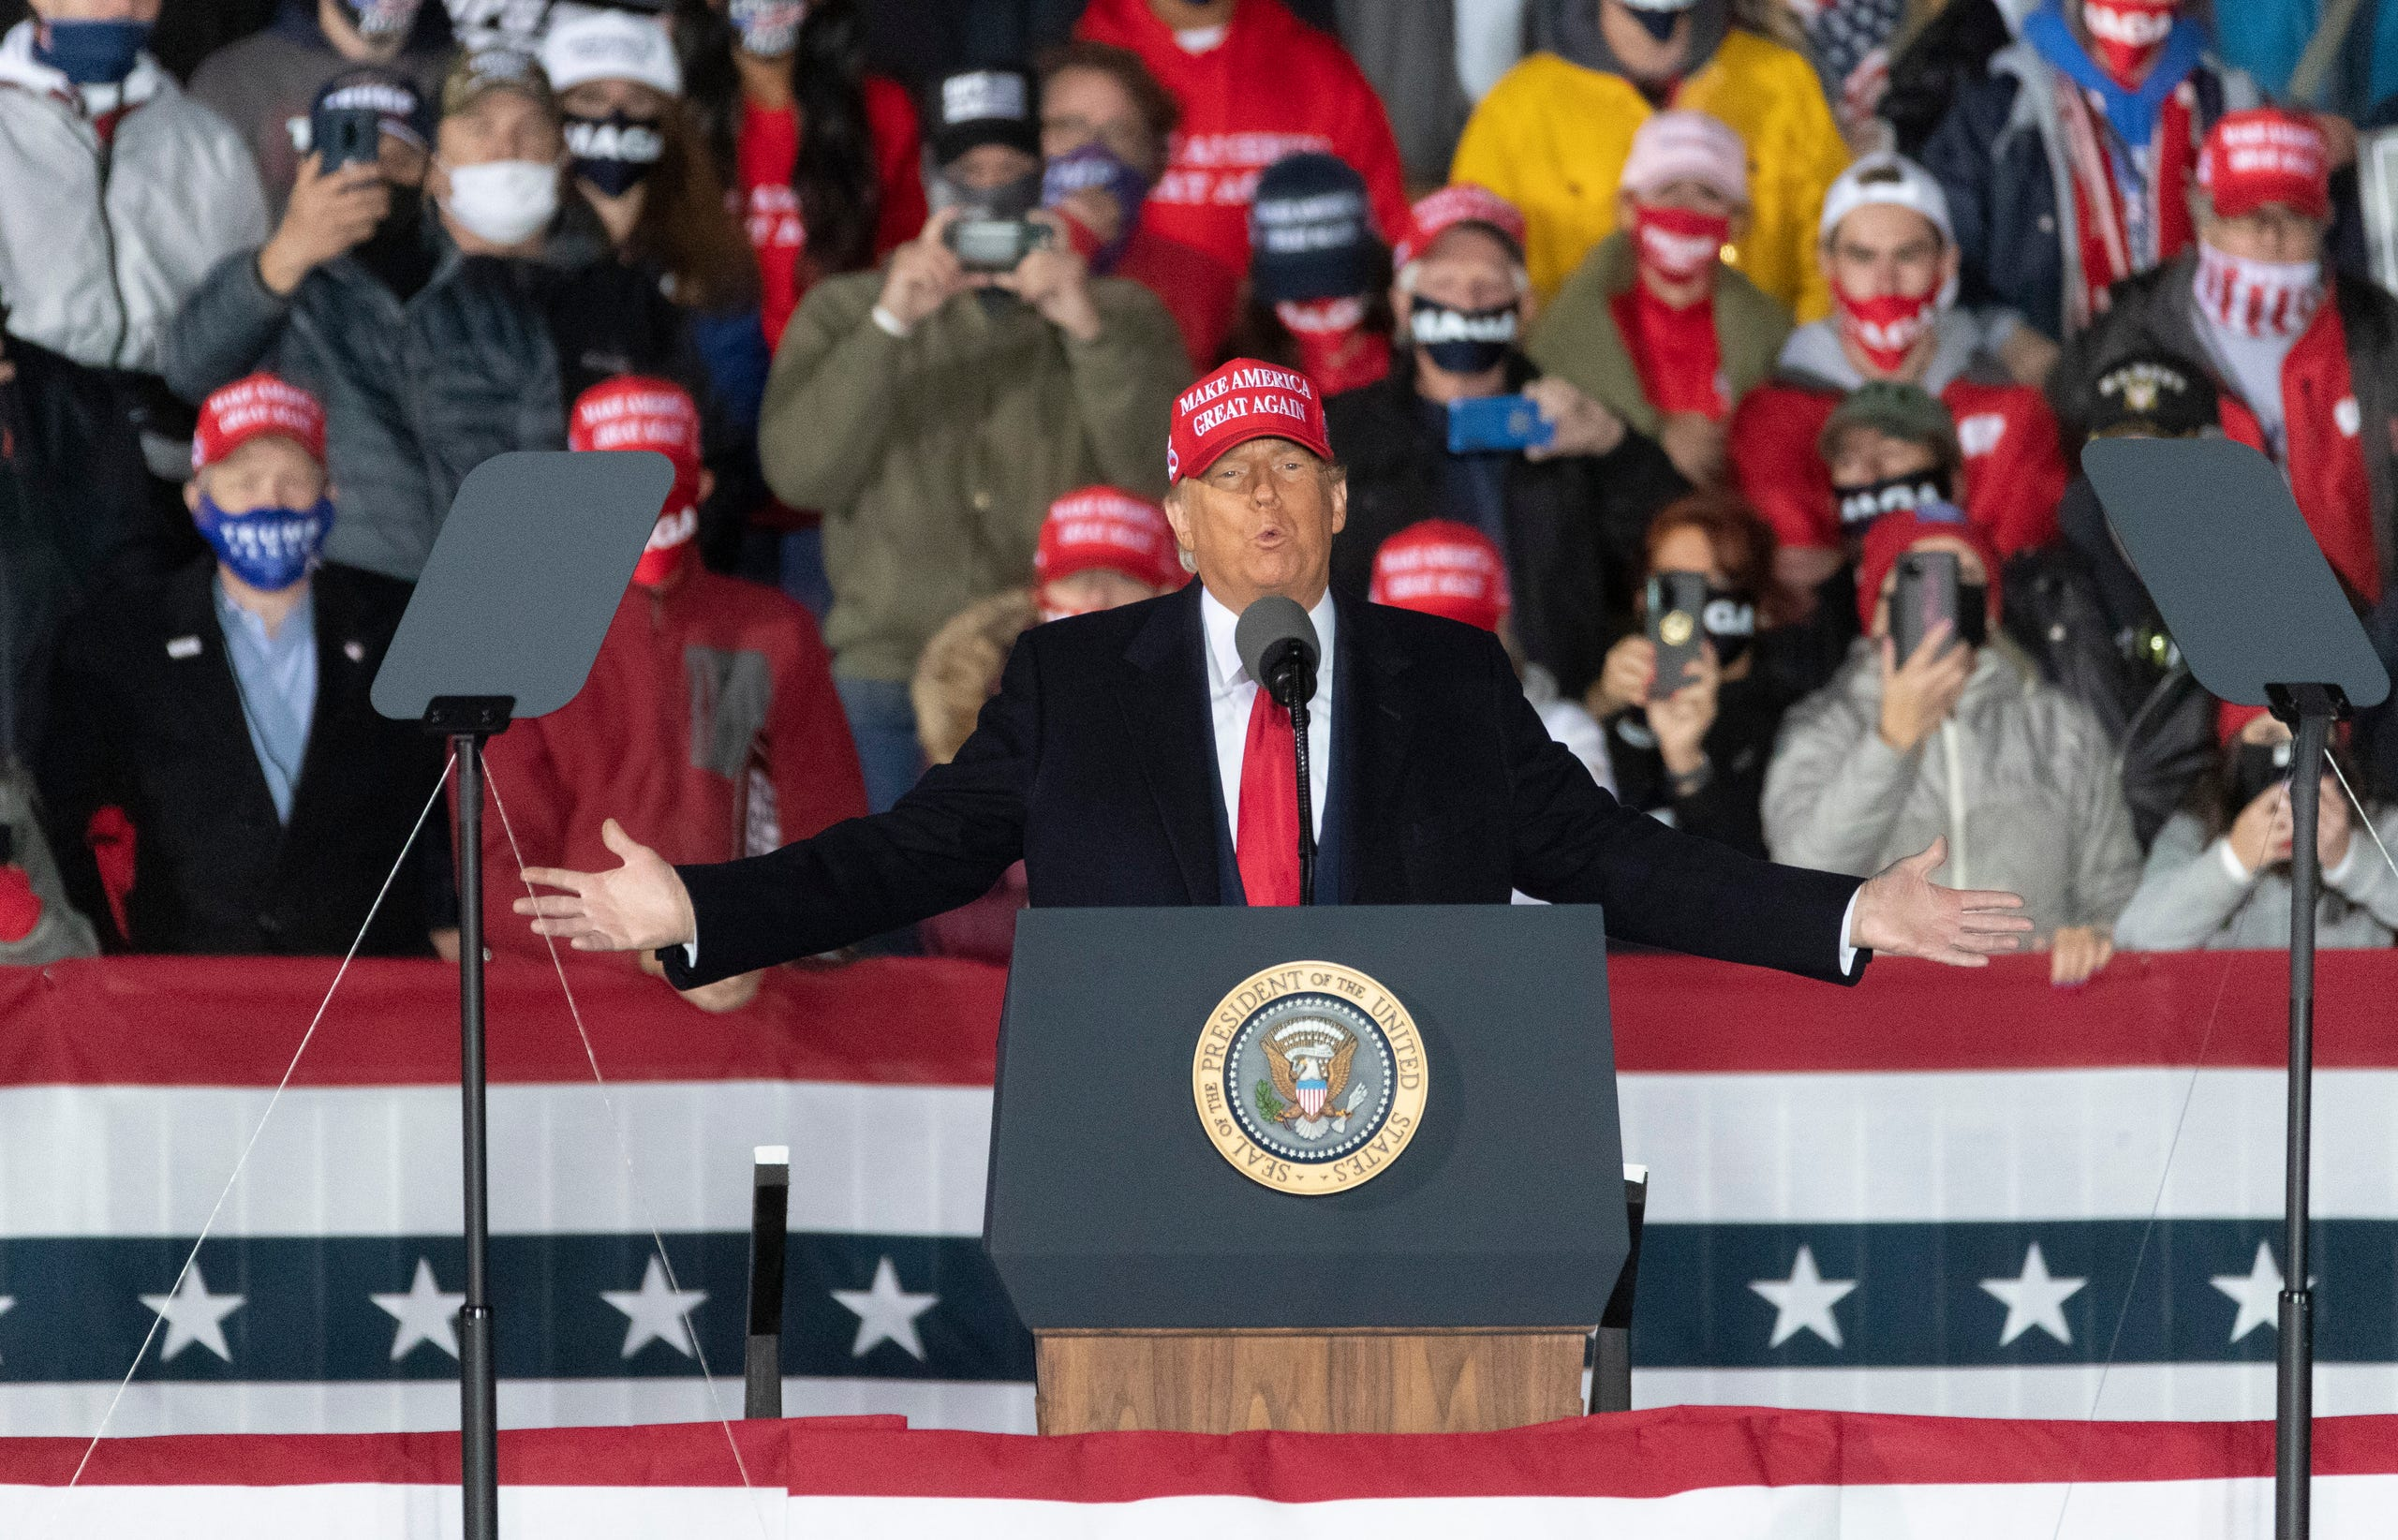 President Donald Trump speaks at a campaign appearance Saturday, Oct. 17, 2020, at the Southern Wisconsin Regional Airport in Janesville. Thousands of Trump's fans, many of them without masks, welcomed the president on an airport tarmac Saturday evening as coronavirus cases soared across Wisconsin.